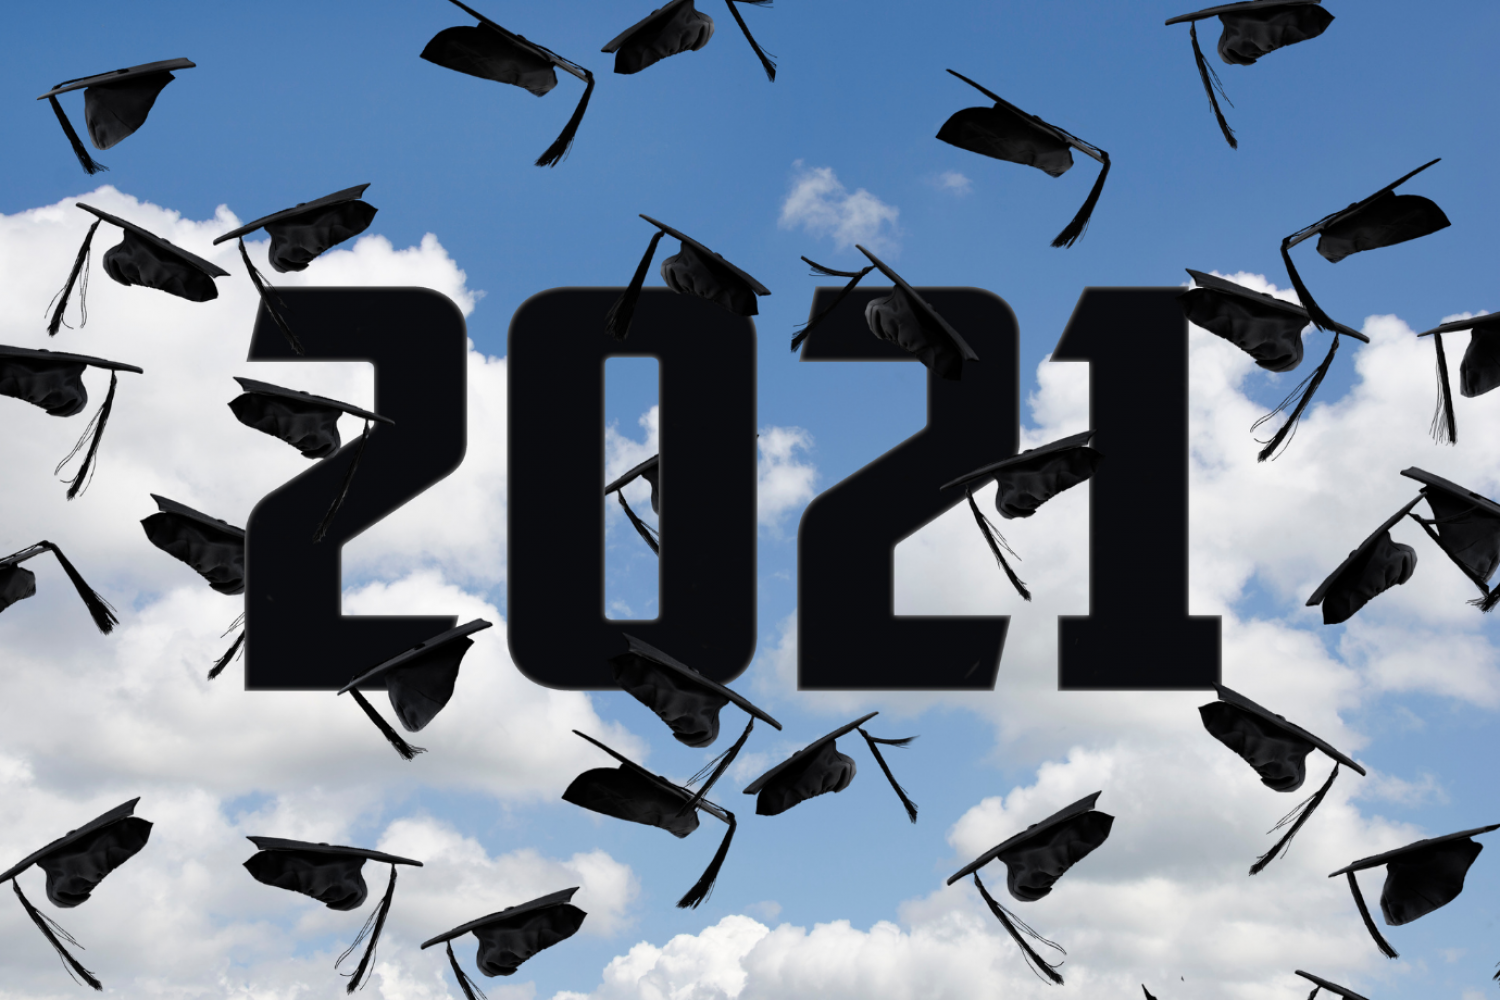 Blue sky backdrop with graduation caps high in the air with year 2021 to indicate it is the graduation for 2021